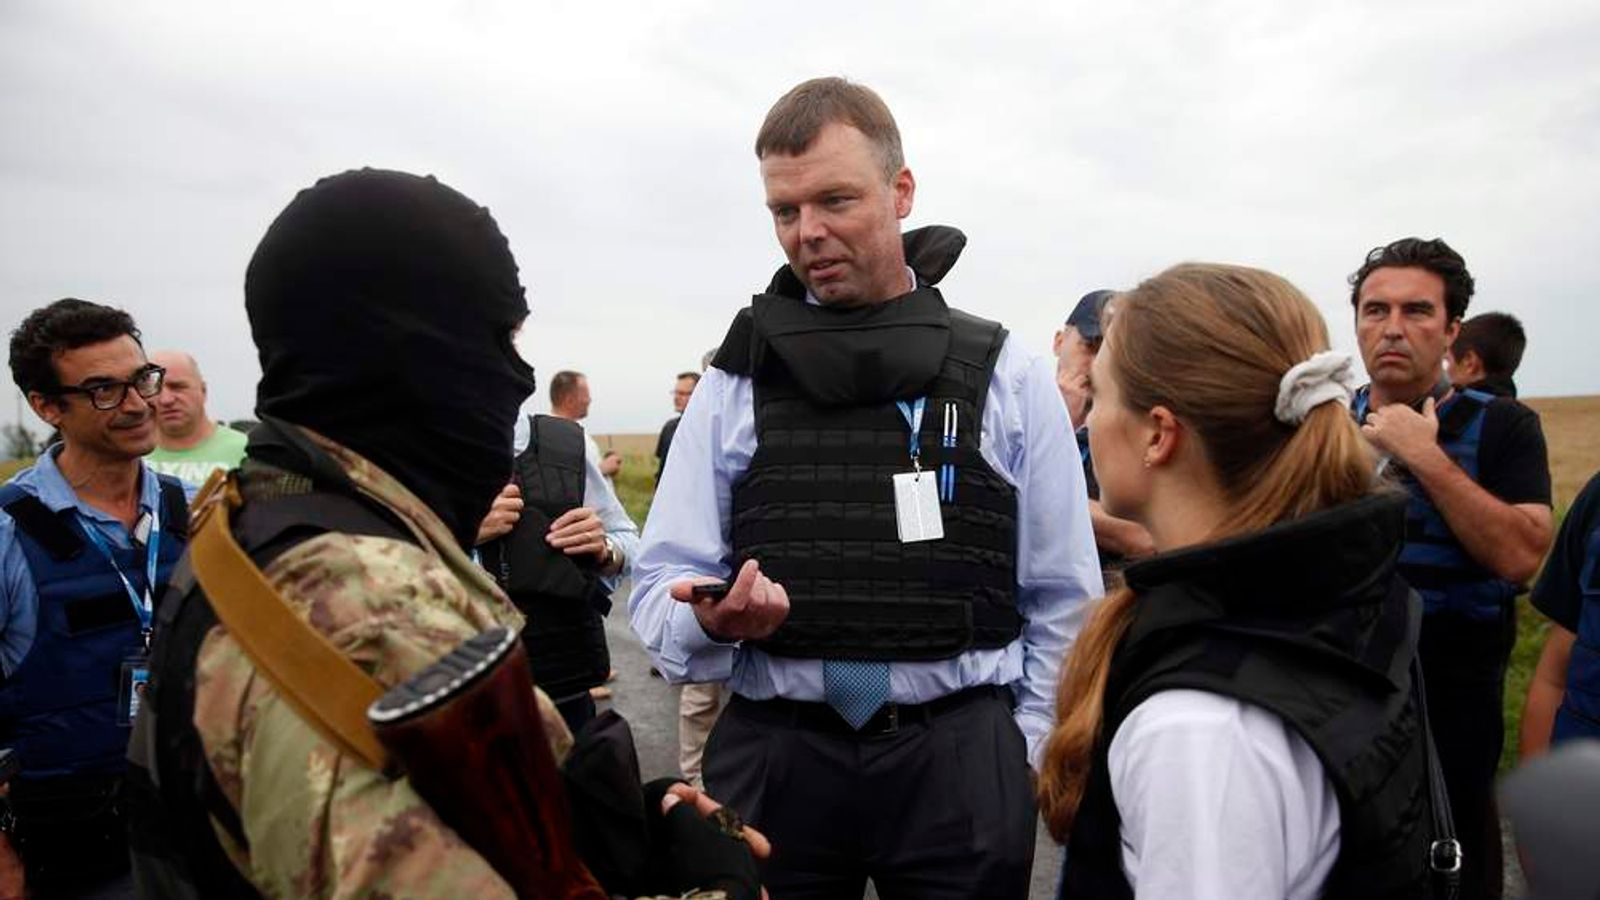 OSCE monitors speak with a pro-Russian separatist at the site of Thursday's Malaysia Airlines Flight MH17 plane crash near the settlement of Grabovo